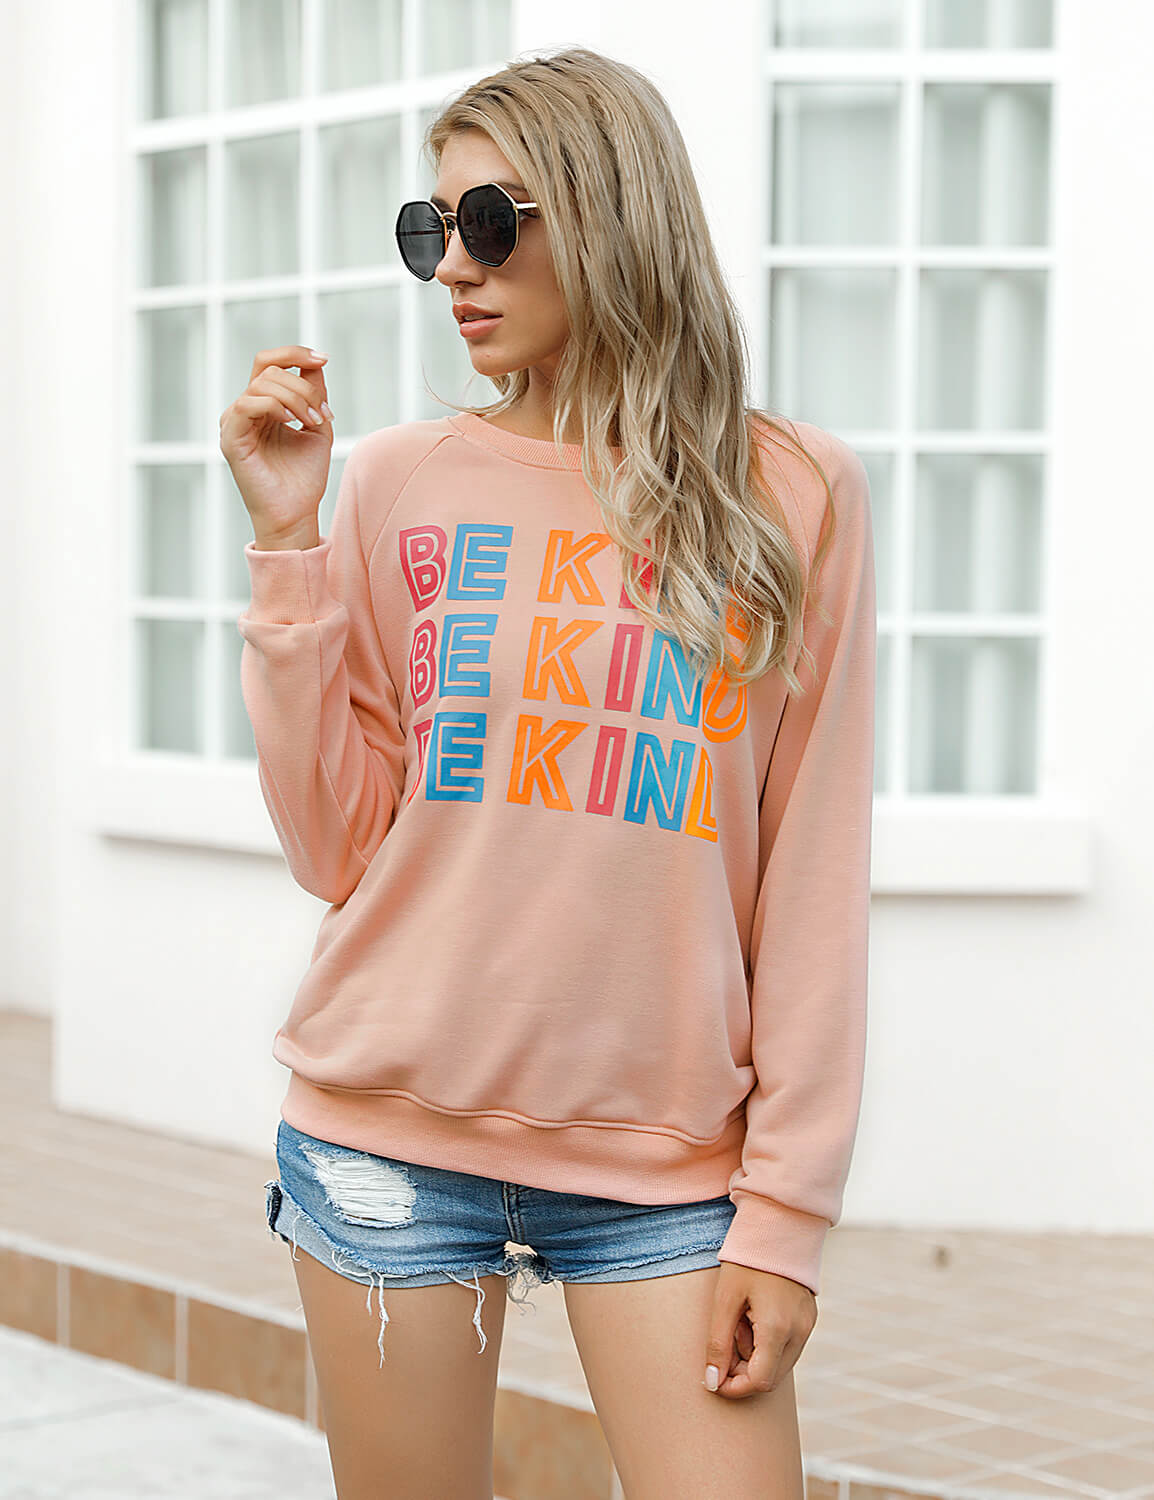 Blooming Jelly_Be Kind Letter Print Sweatshirt_Pink_304010_14_Cute Women Outdoor Autumn&Winter_Tops_Sweatshirt